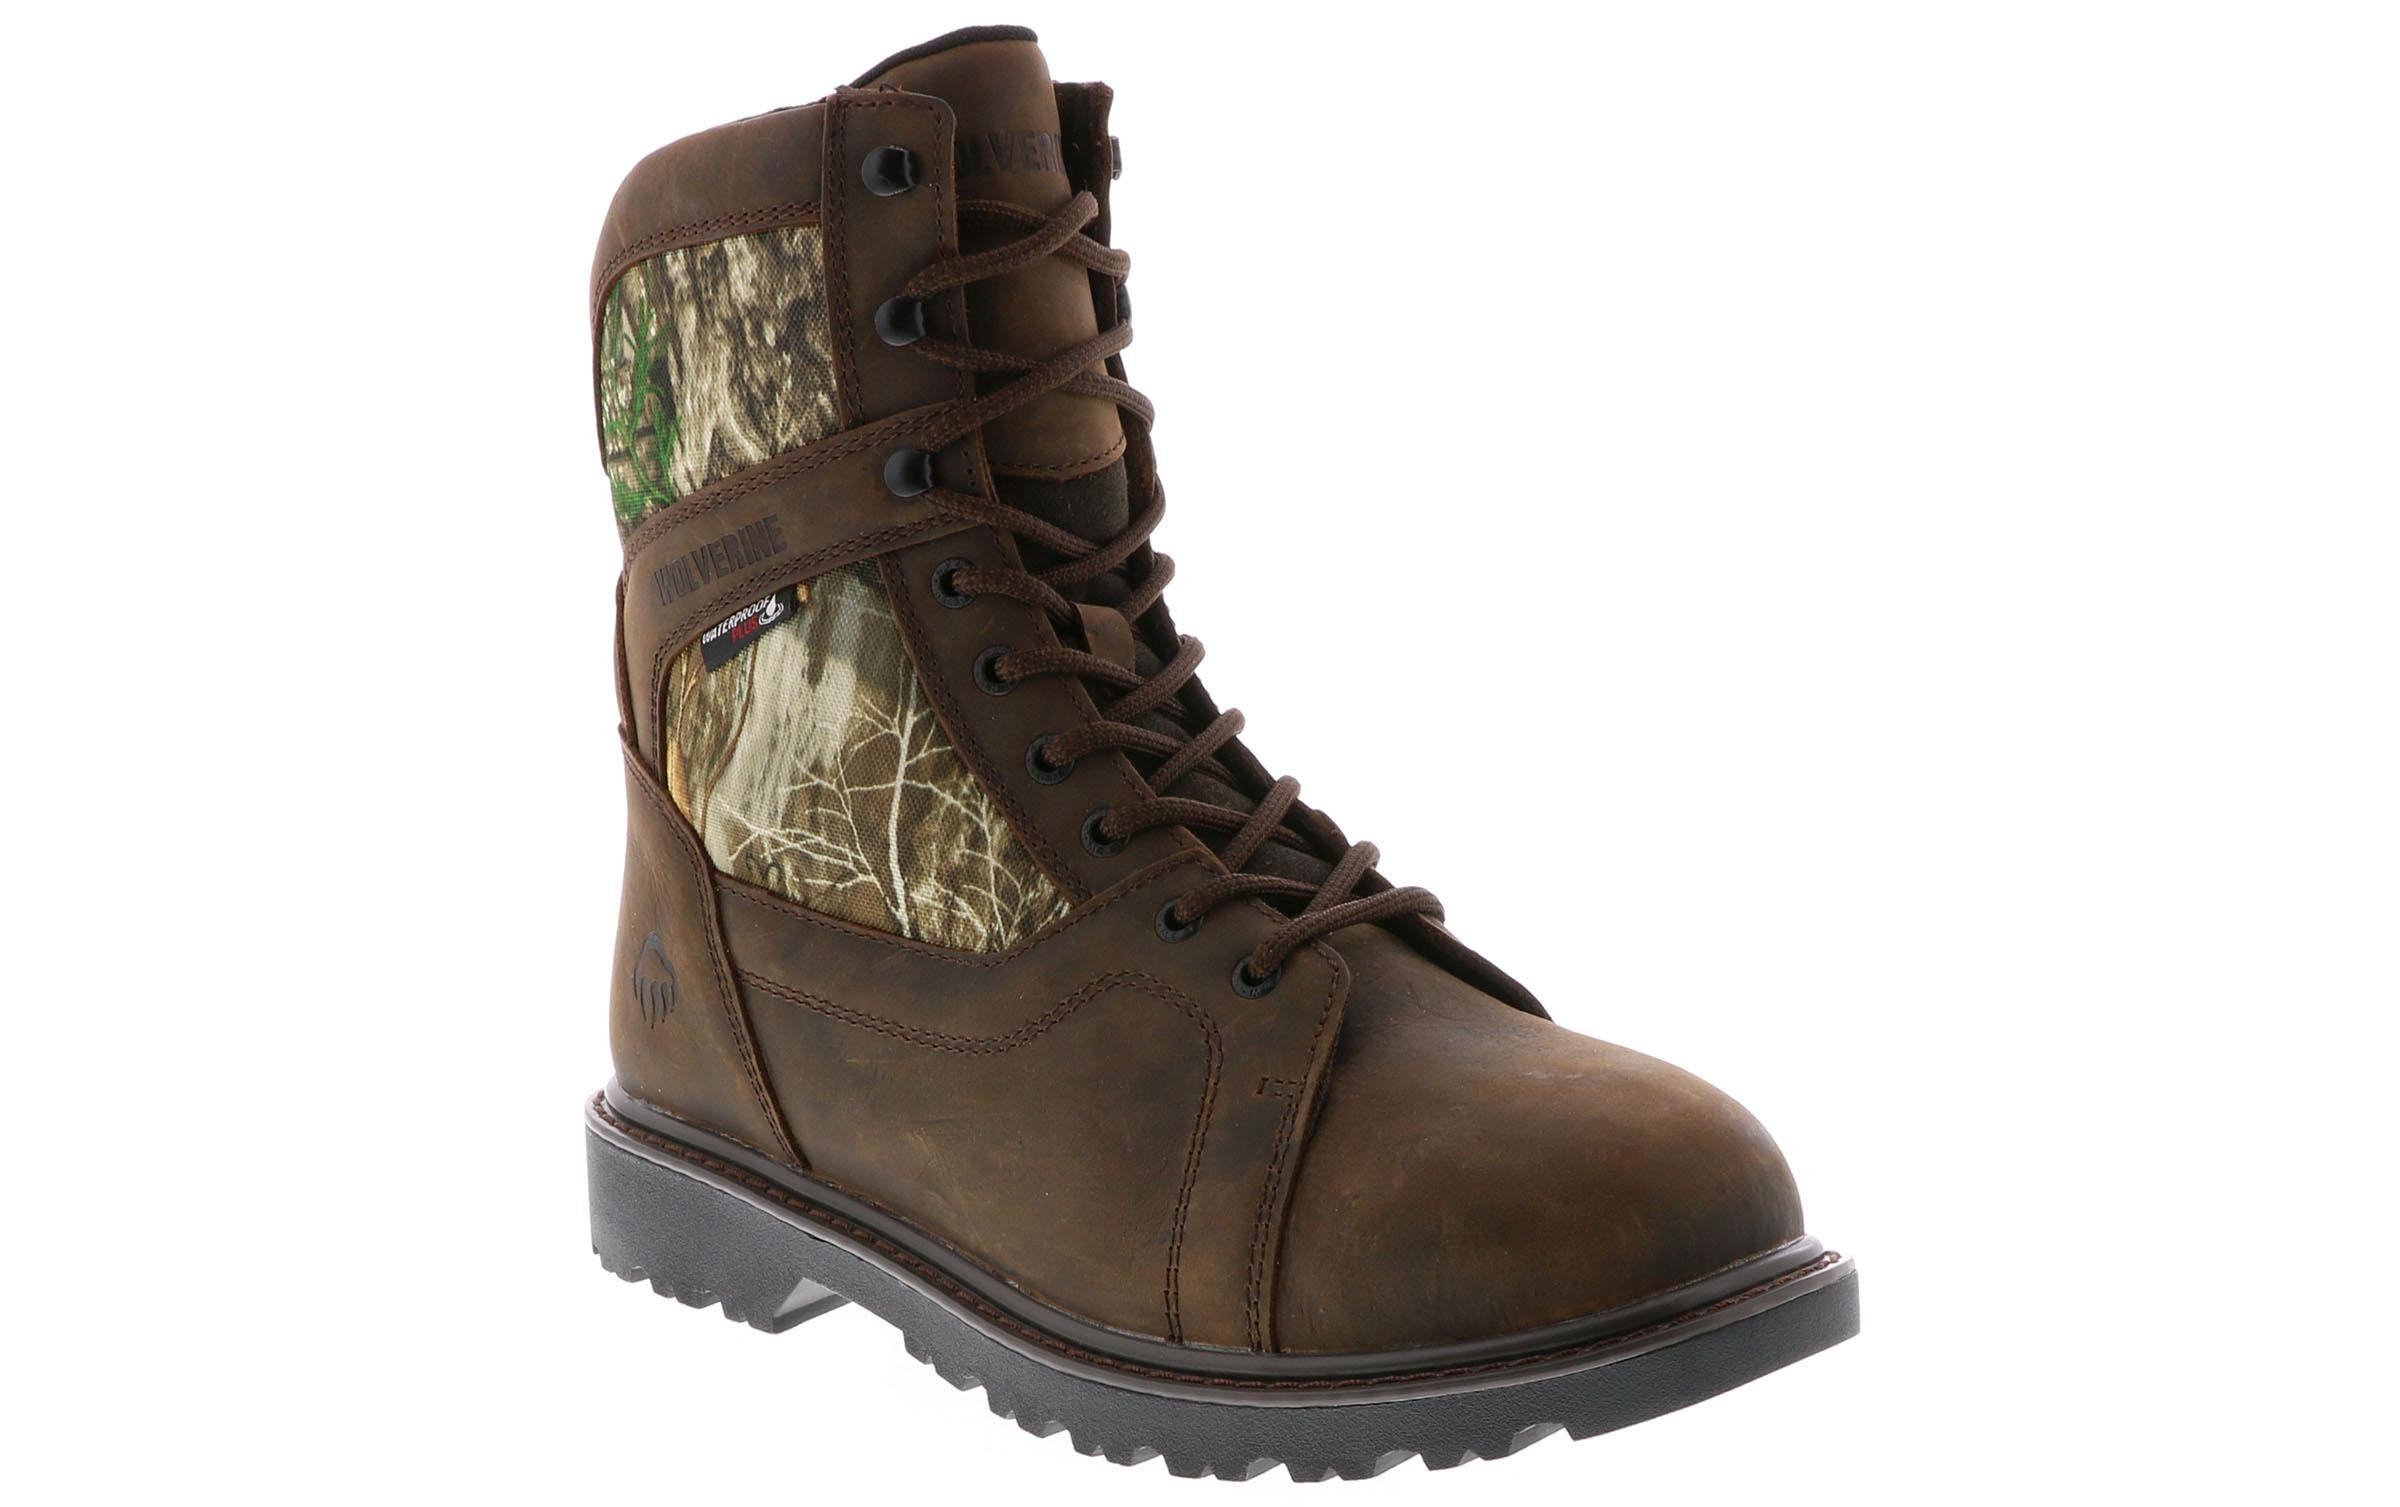 4b2a04c7209 Men's Wolverine Blackhorn